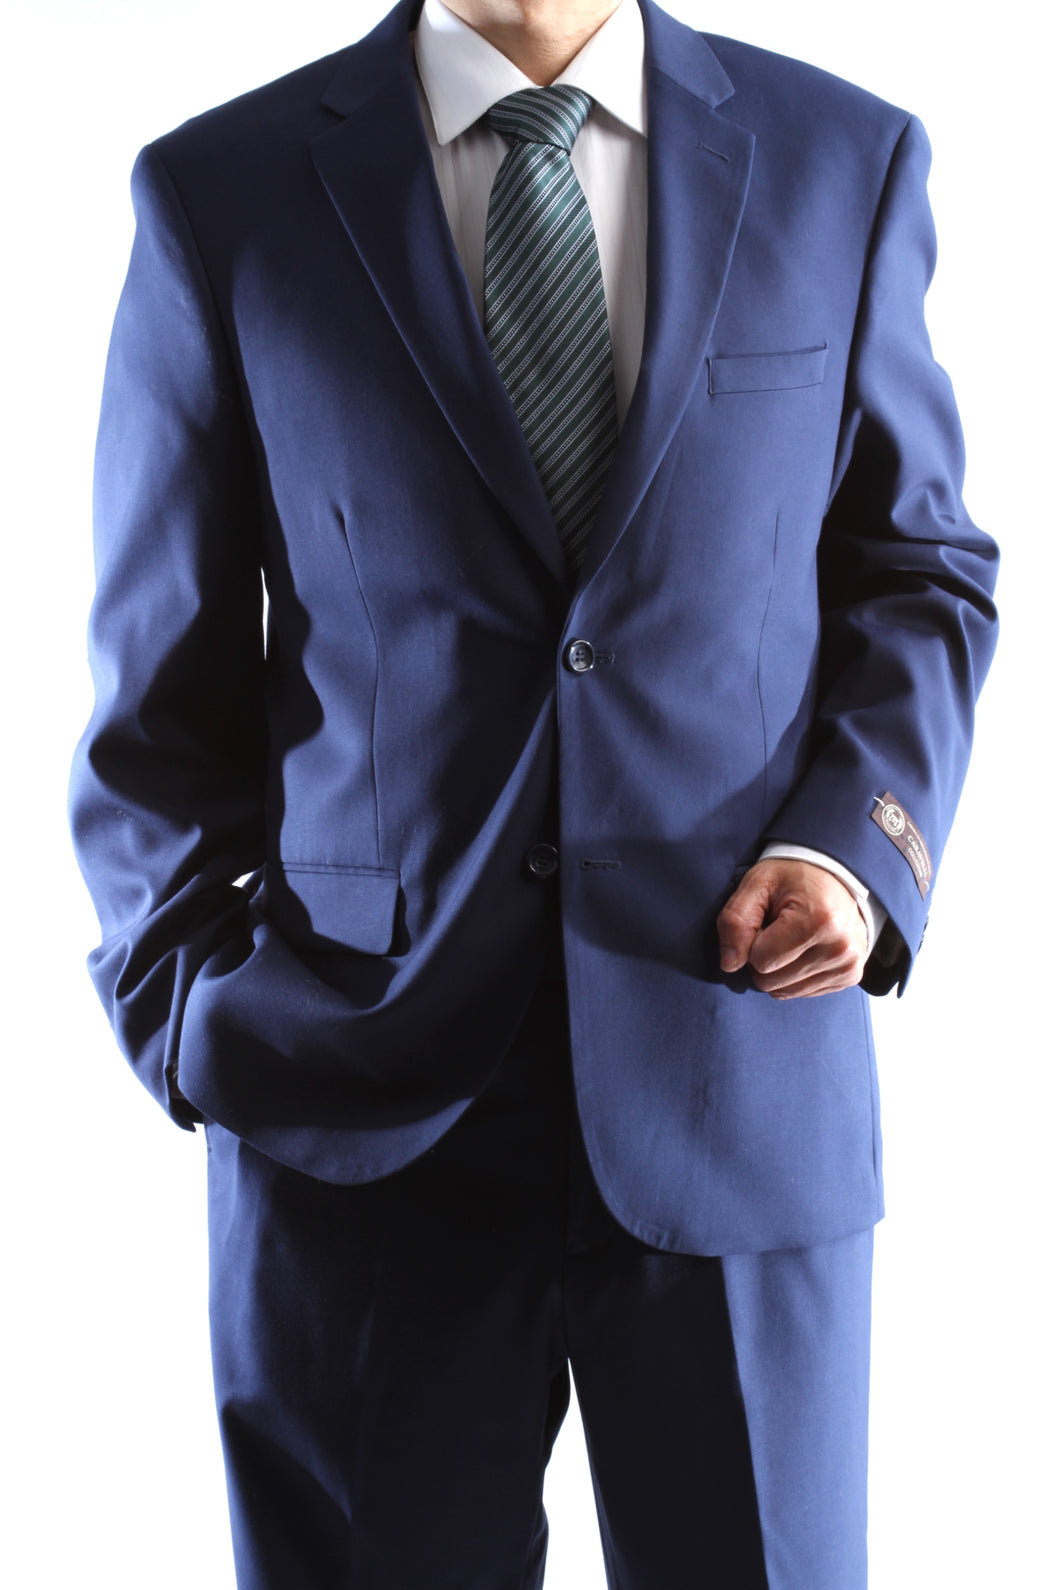 Bolzano Men's 2 Button Notch Lapel 2pc Suit Regular fit style S600212N in Midnight Blue Color (free shipping)